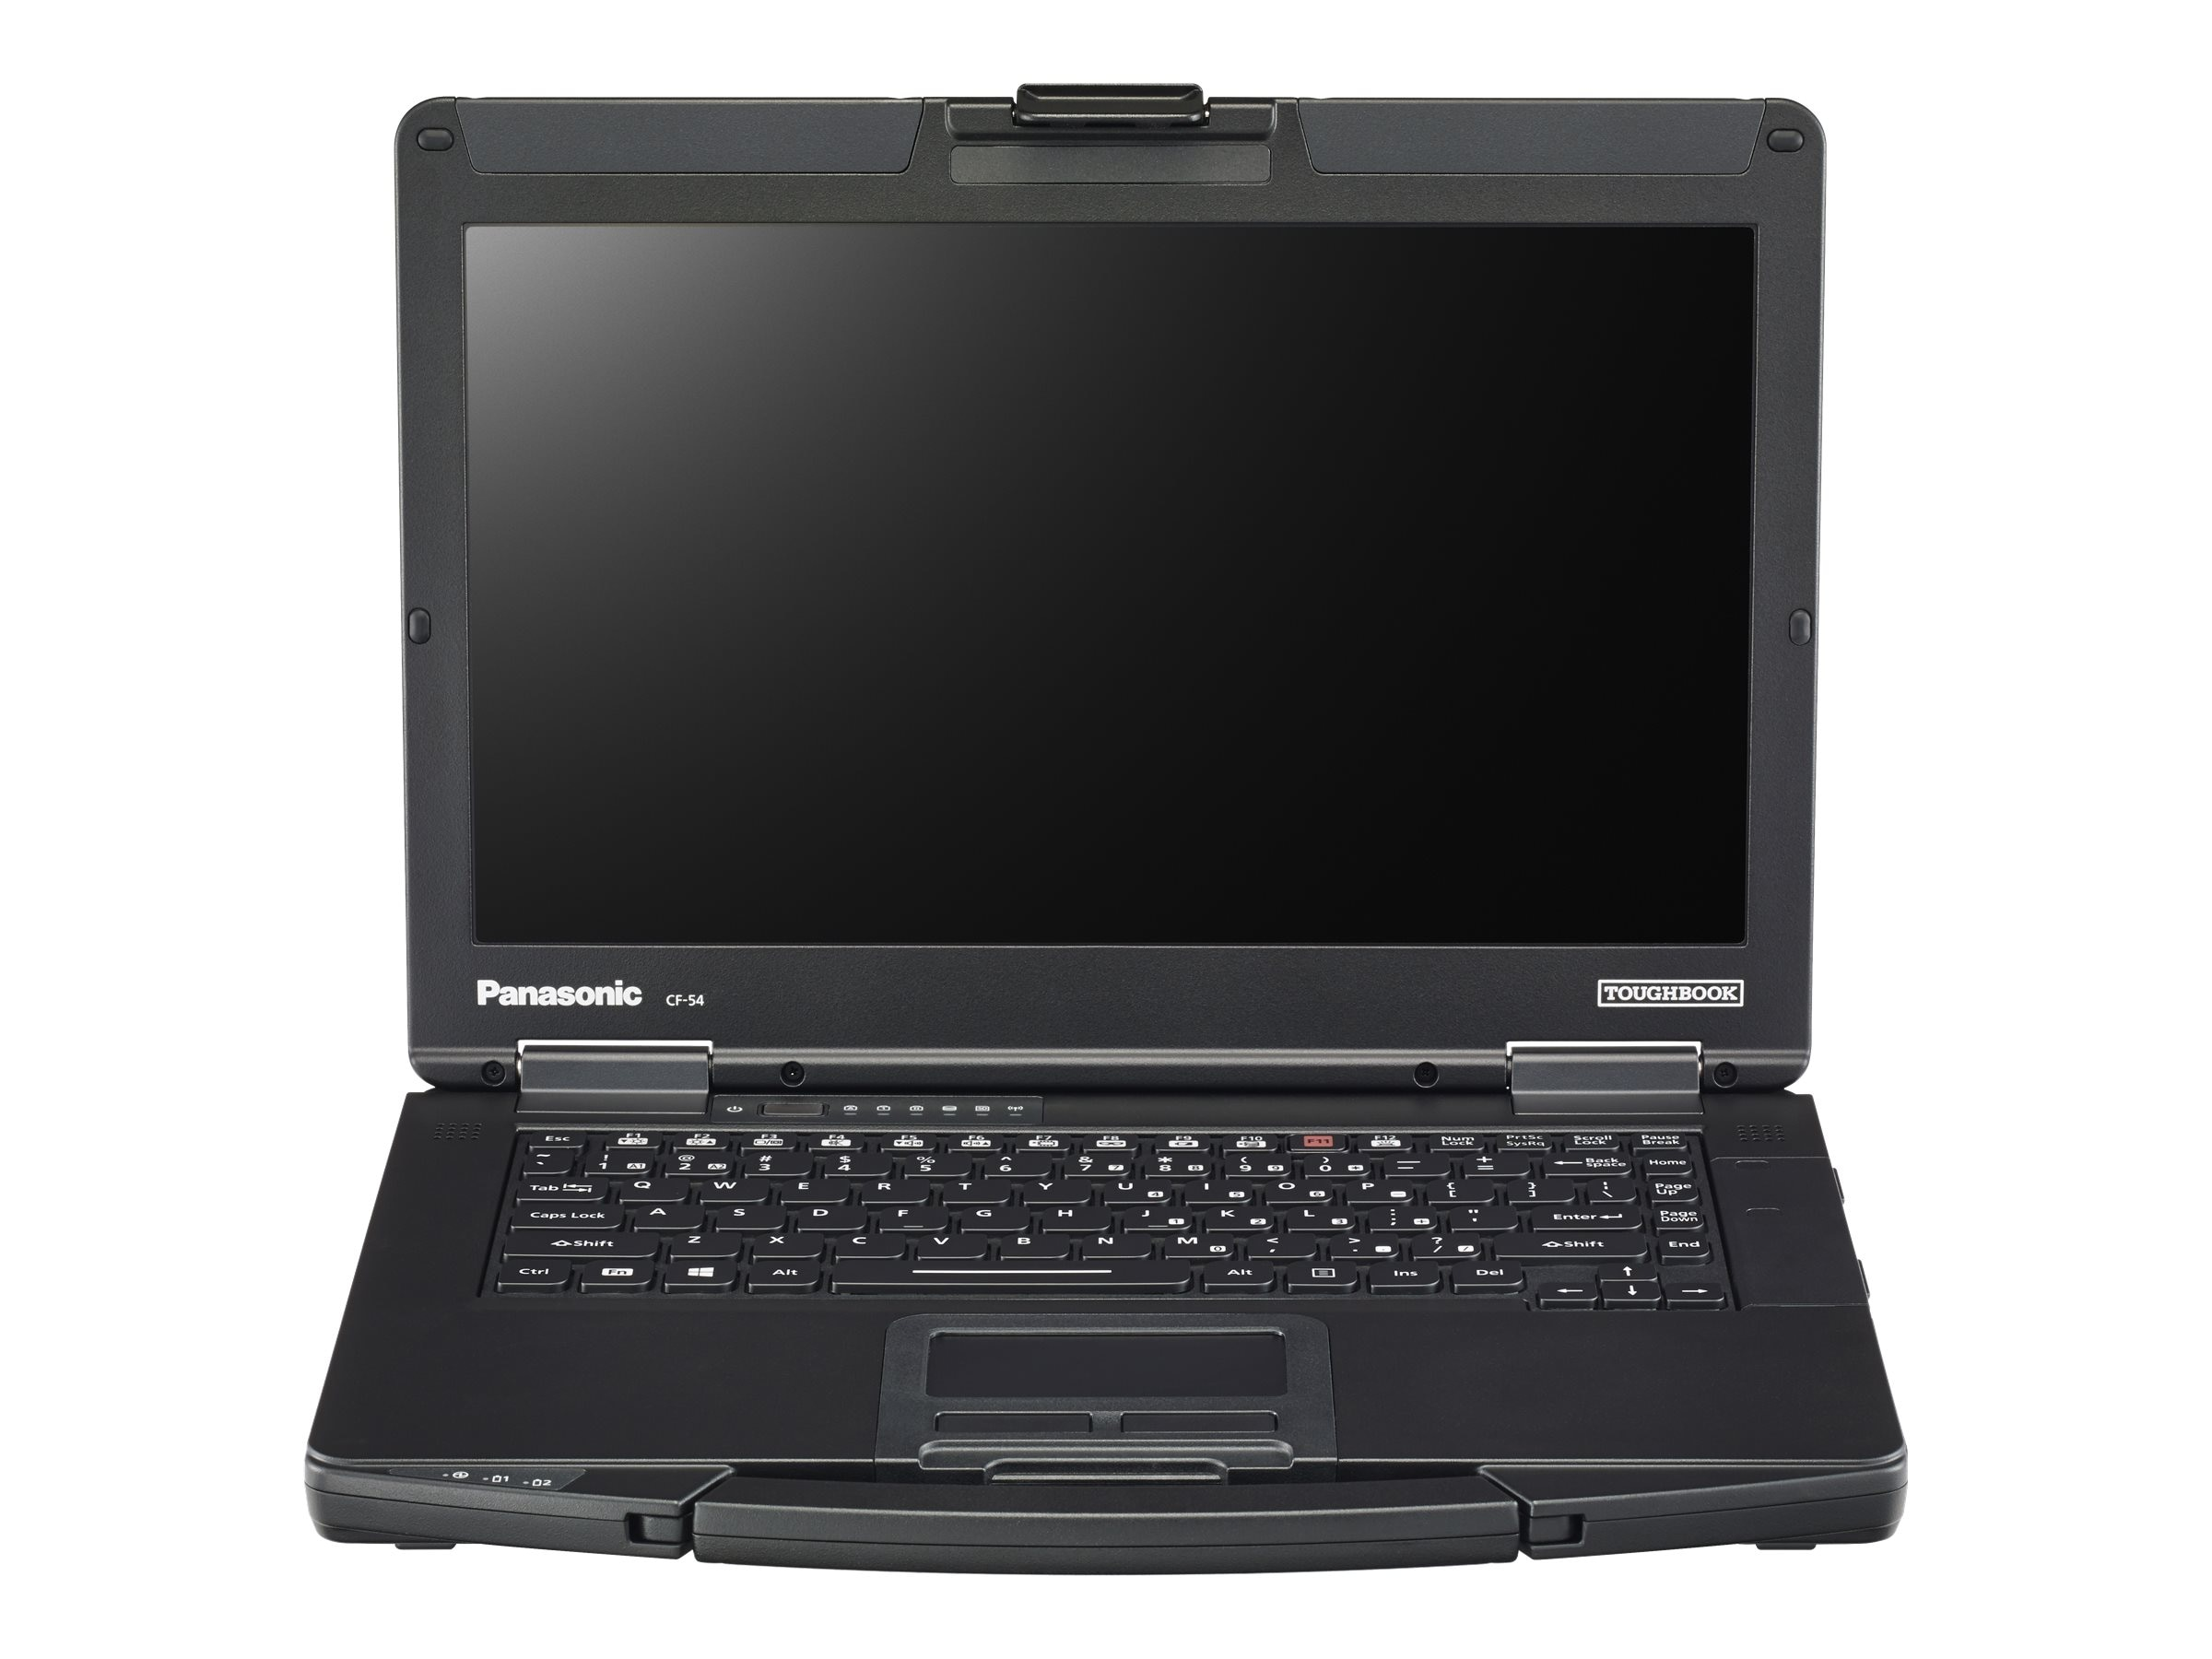 Panasonic Toughbook 54 2.4GHz Core i5 14in display, CF-54F0001KM